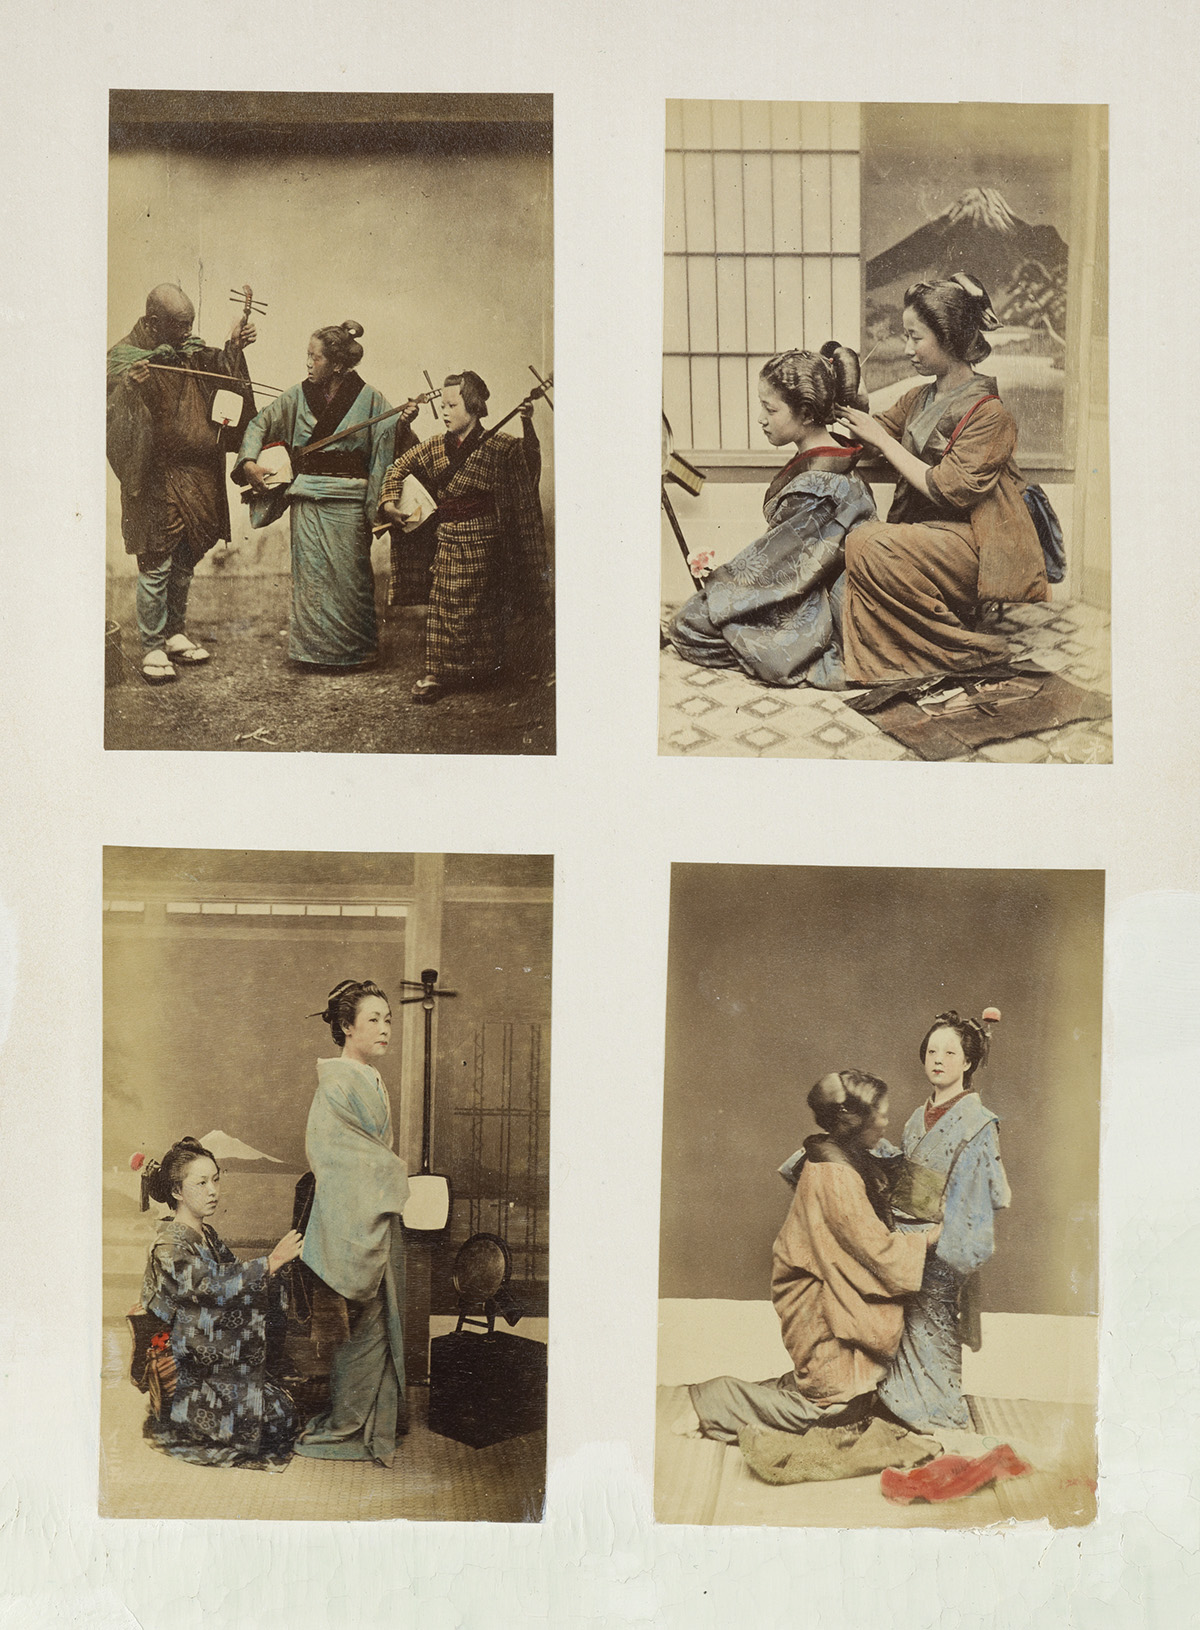 (JAPAN) A dynamic album with approximately 190 small-format photographs, most hand-colored.